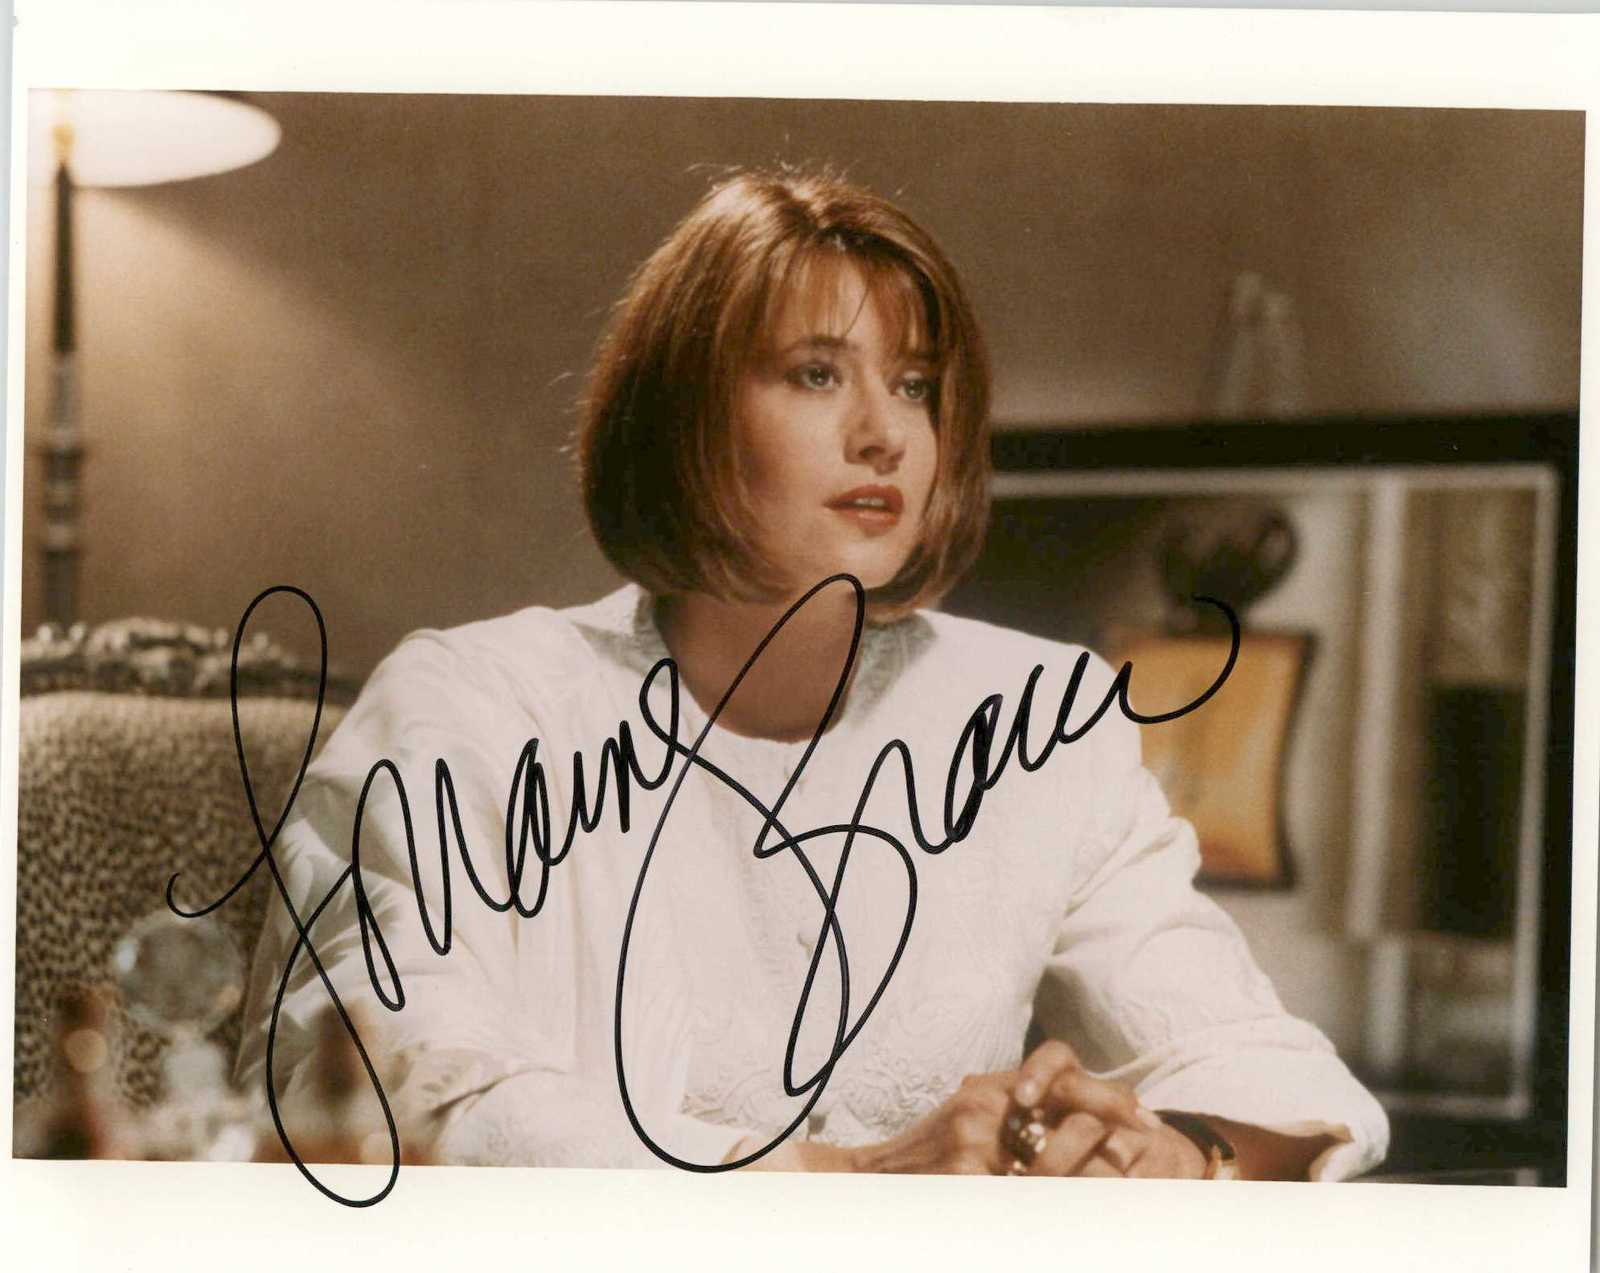 Primary image for Lorraine Bracco Signed Autographed Glossy 8x10 Photo